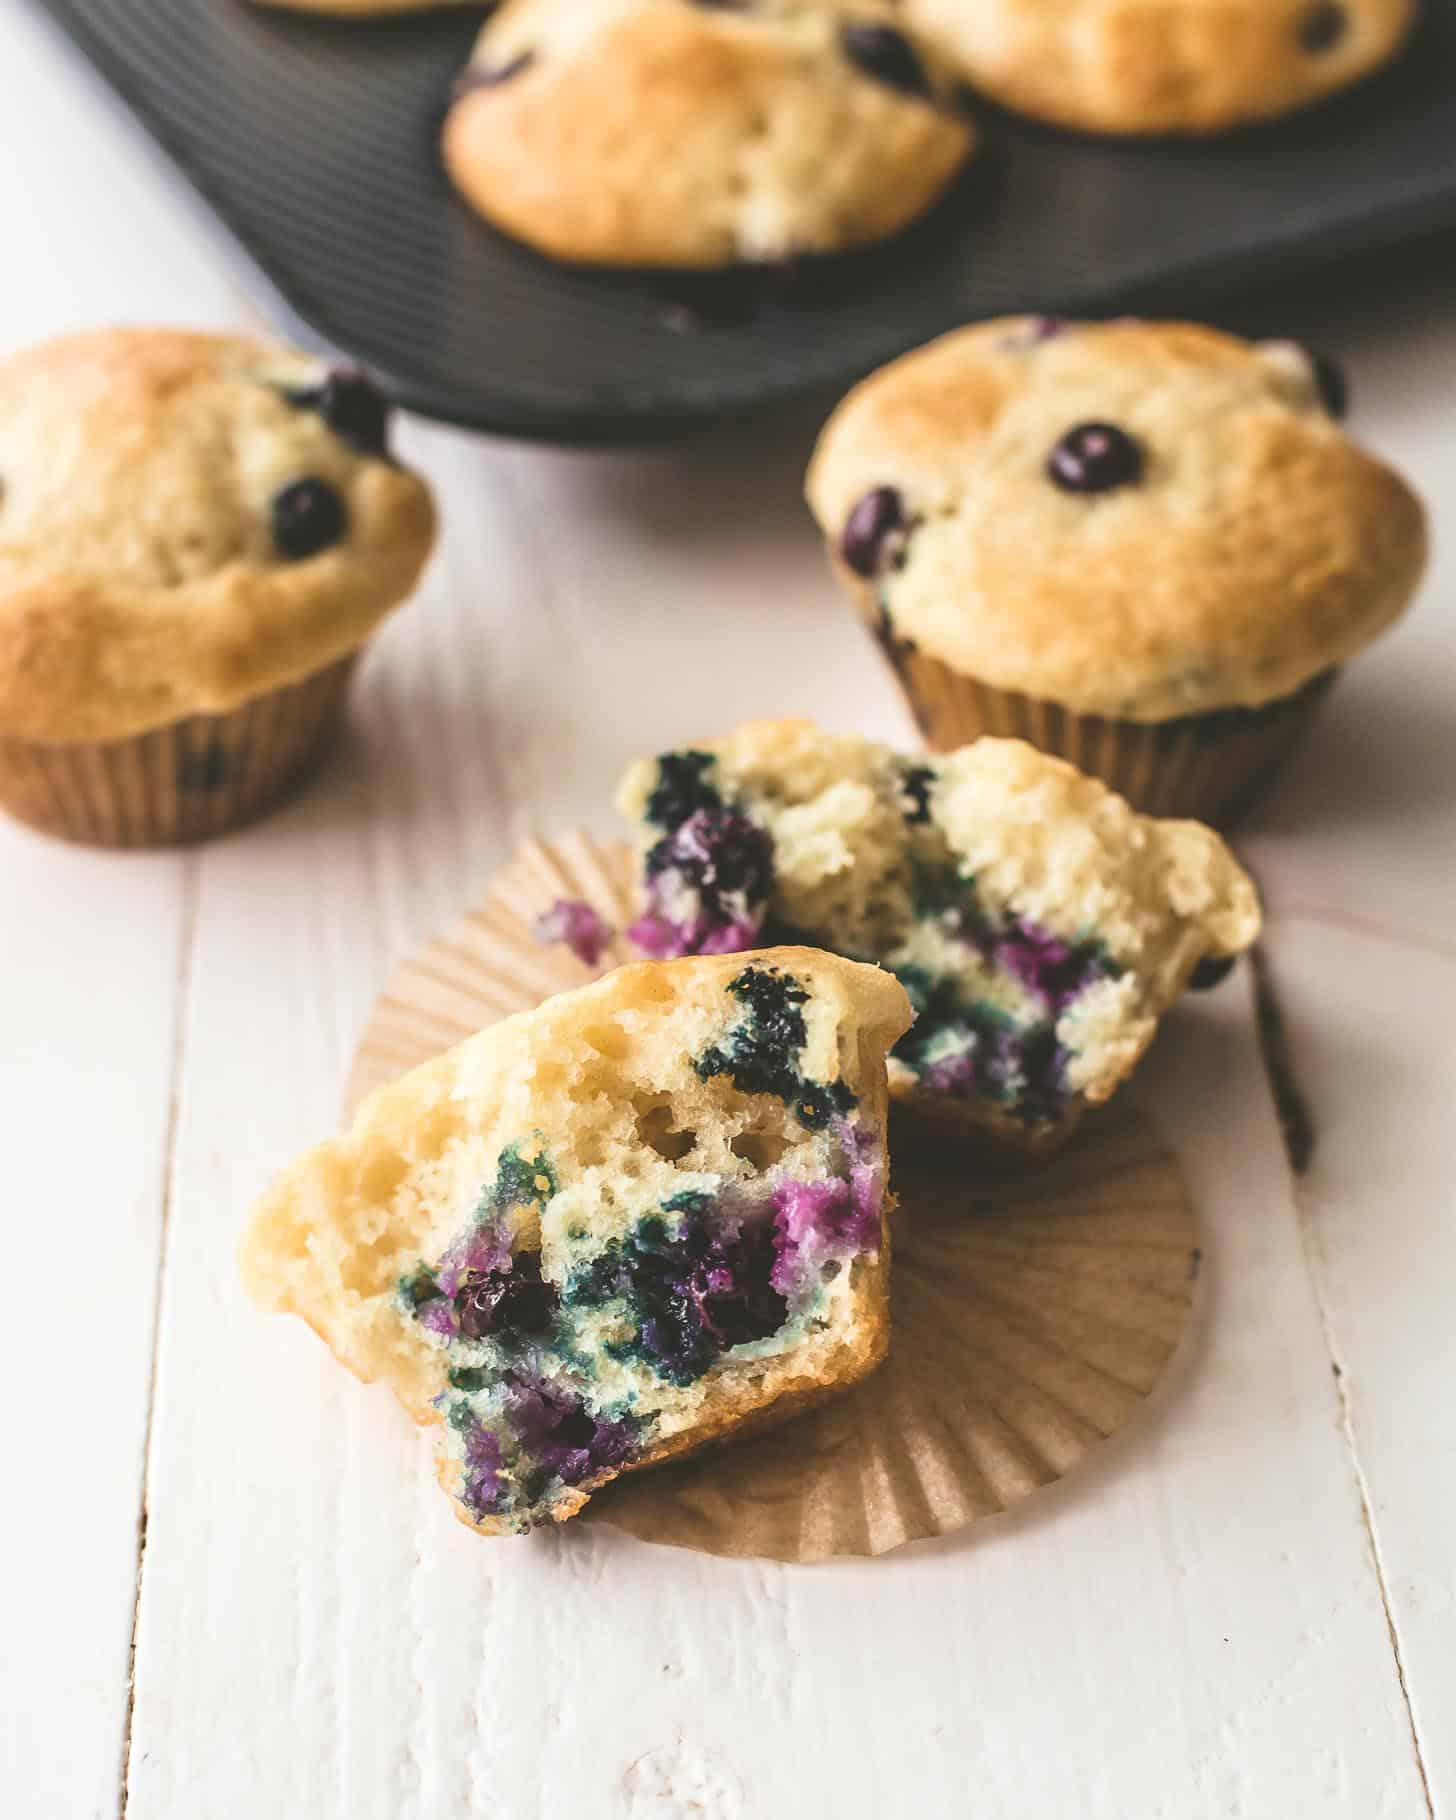 Blueberry Yogurt Muffins on a white table. One muffin is broken in half on a muffin wrapper.